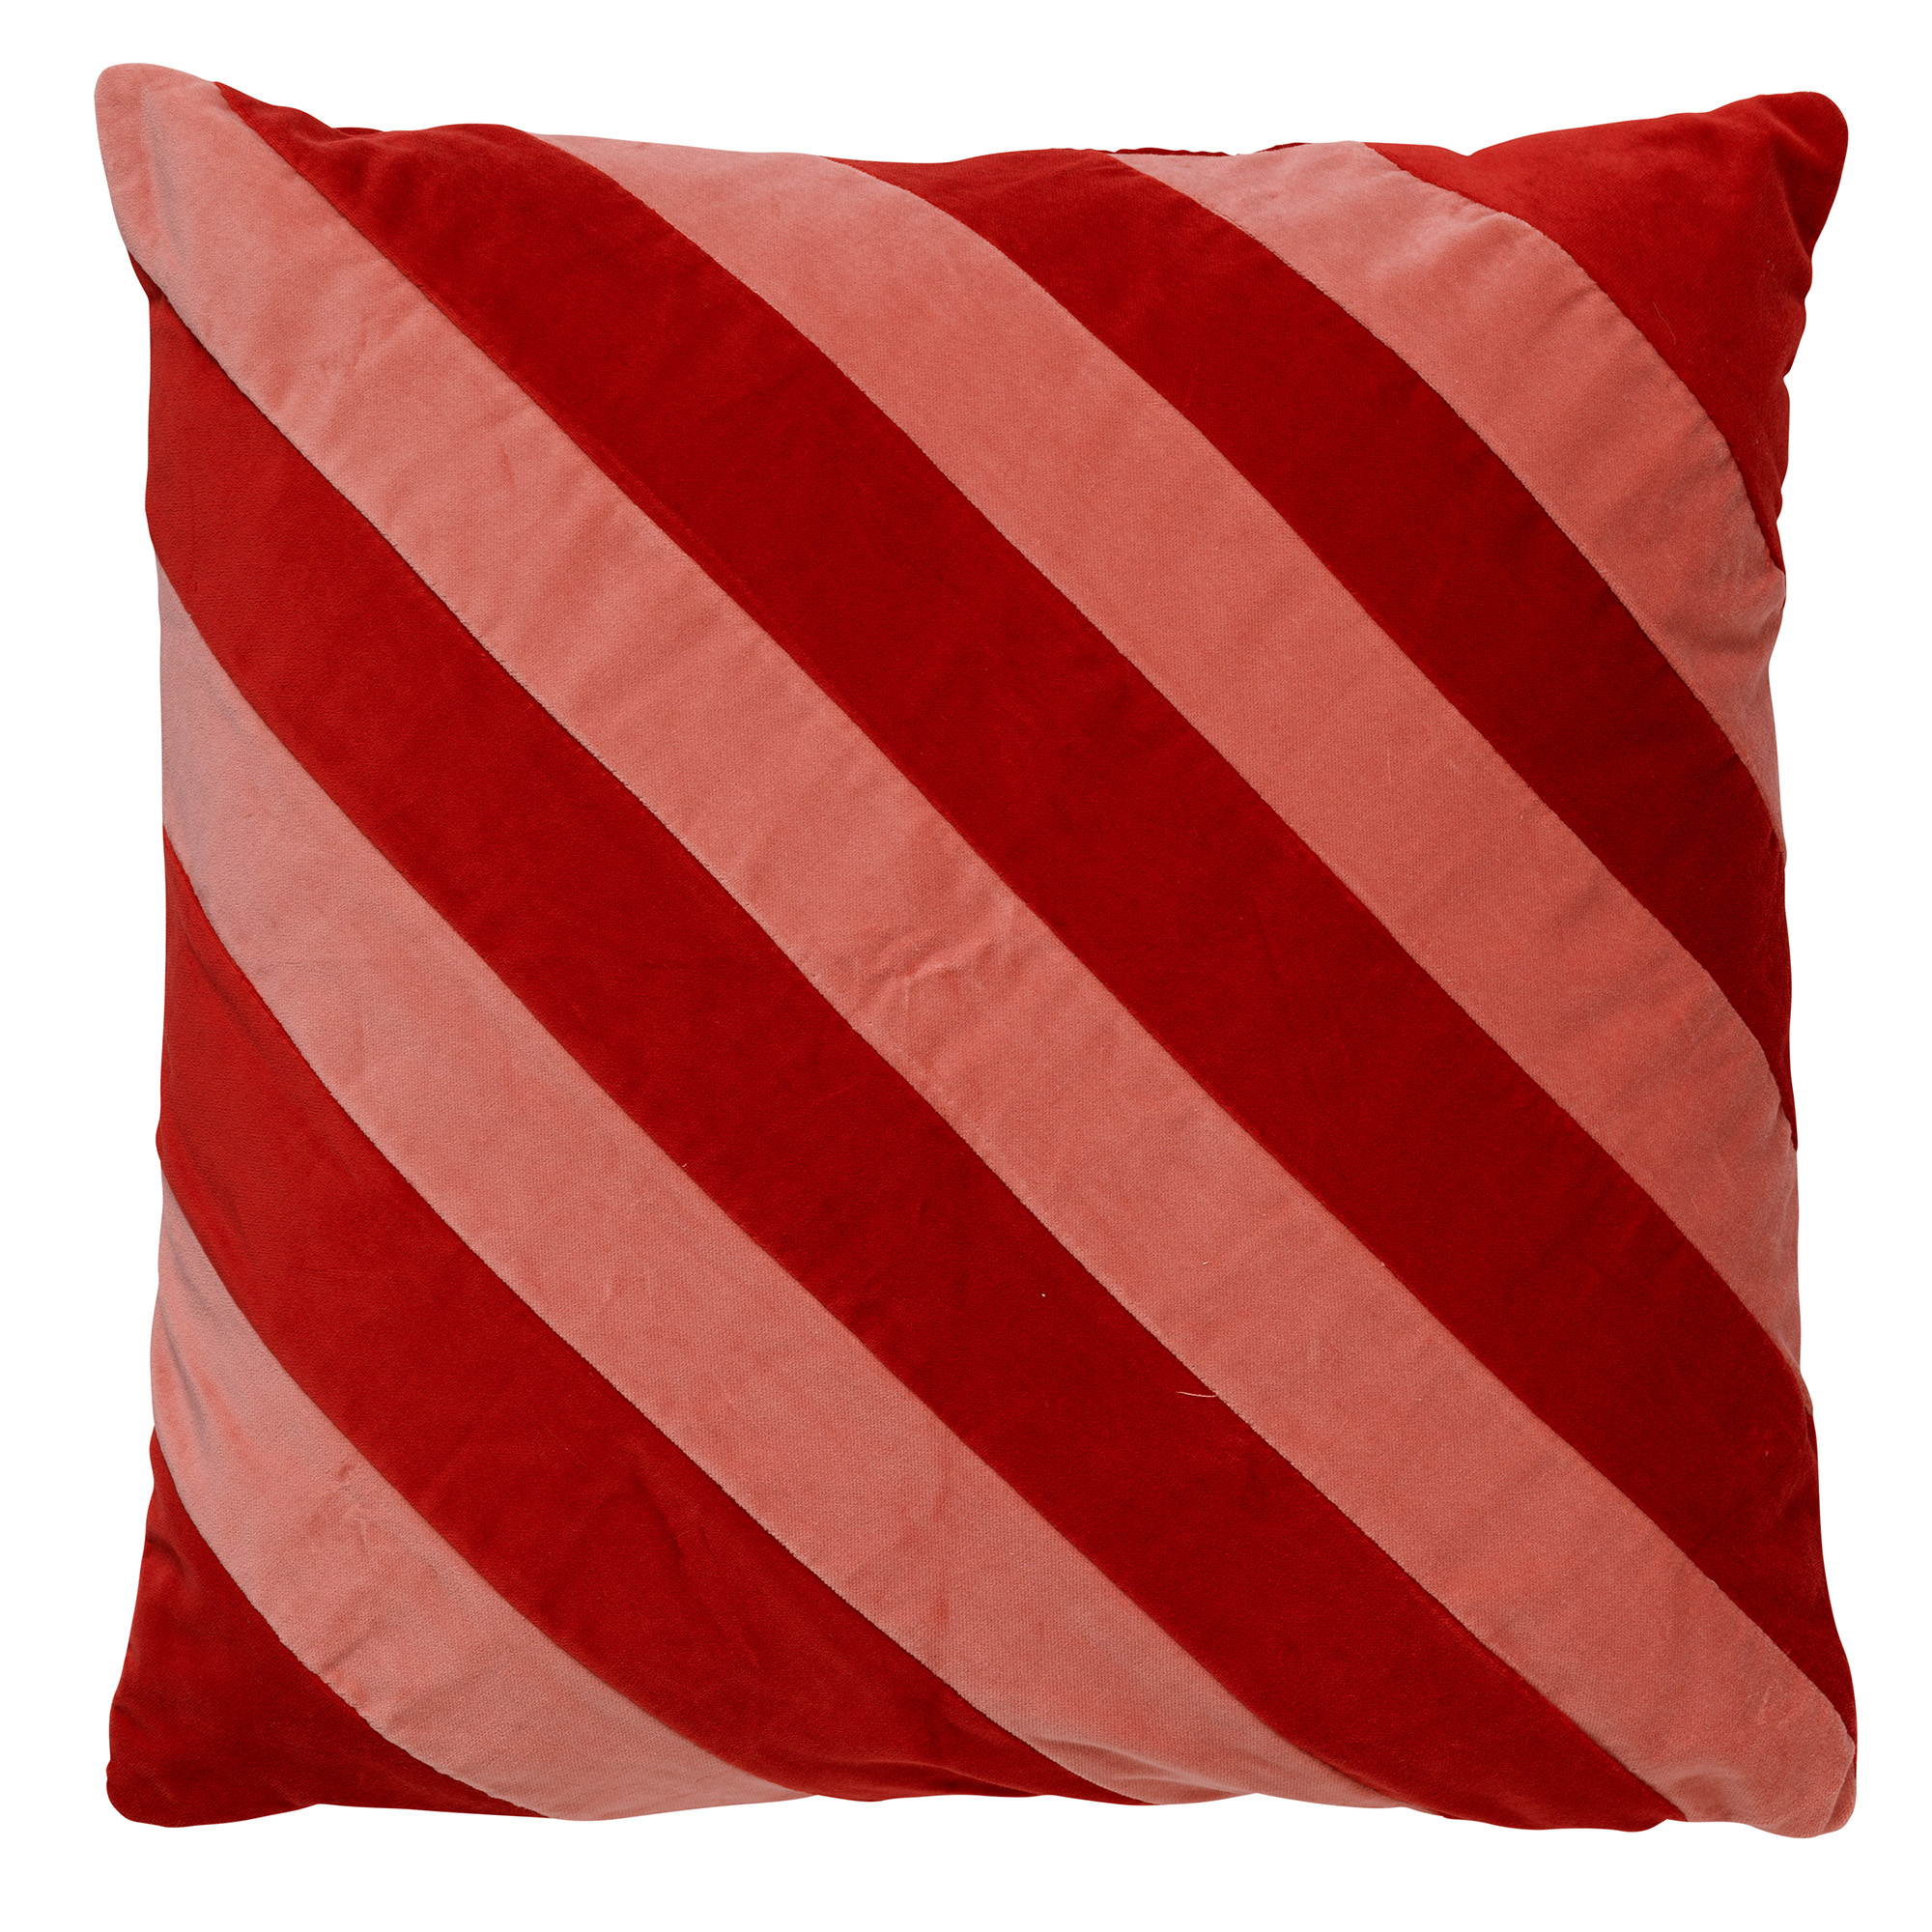 PEBBE - Kussenhoes velvet Aurora Red 45x45 cm